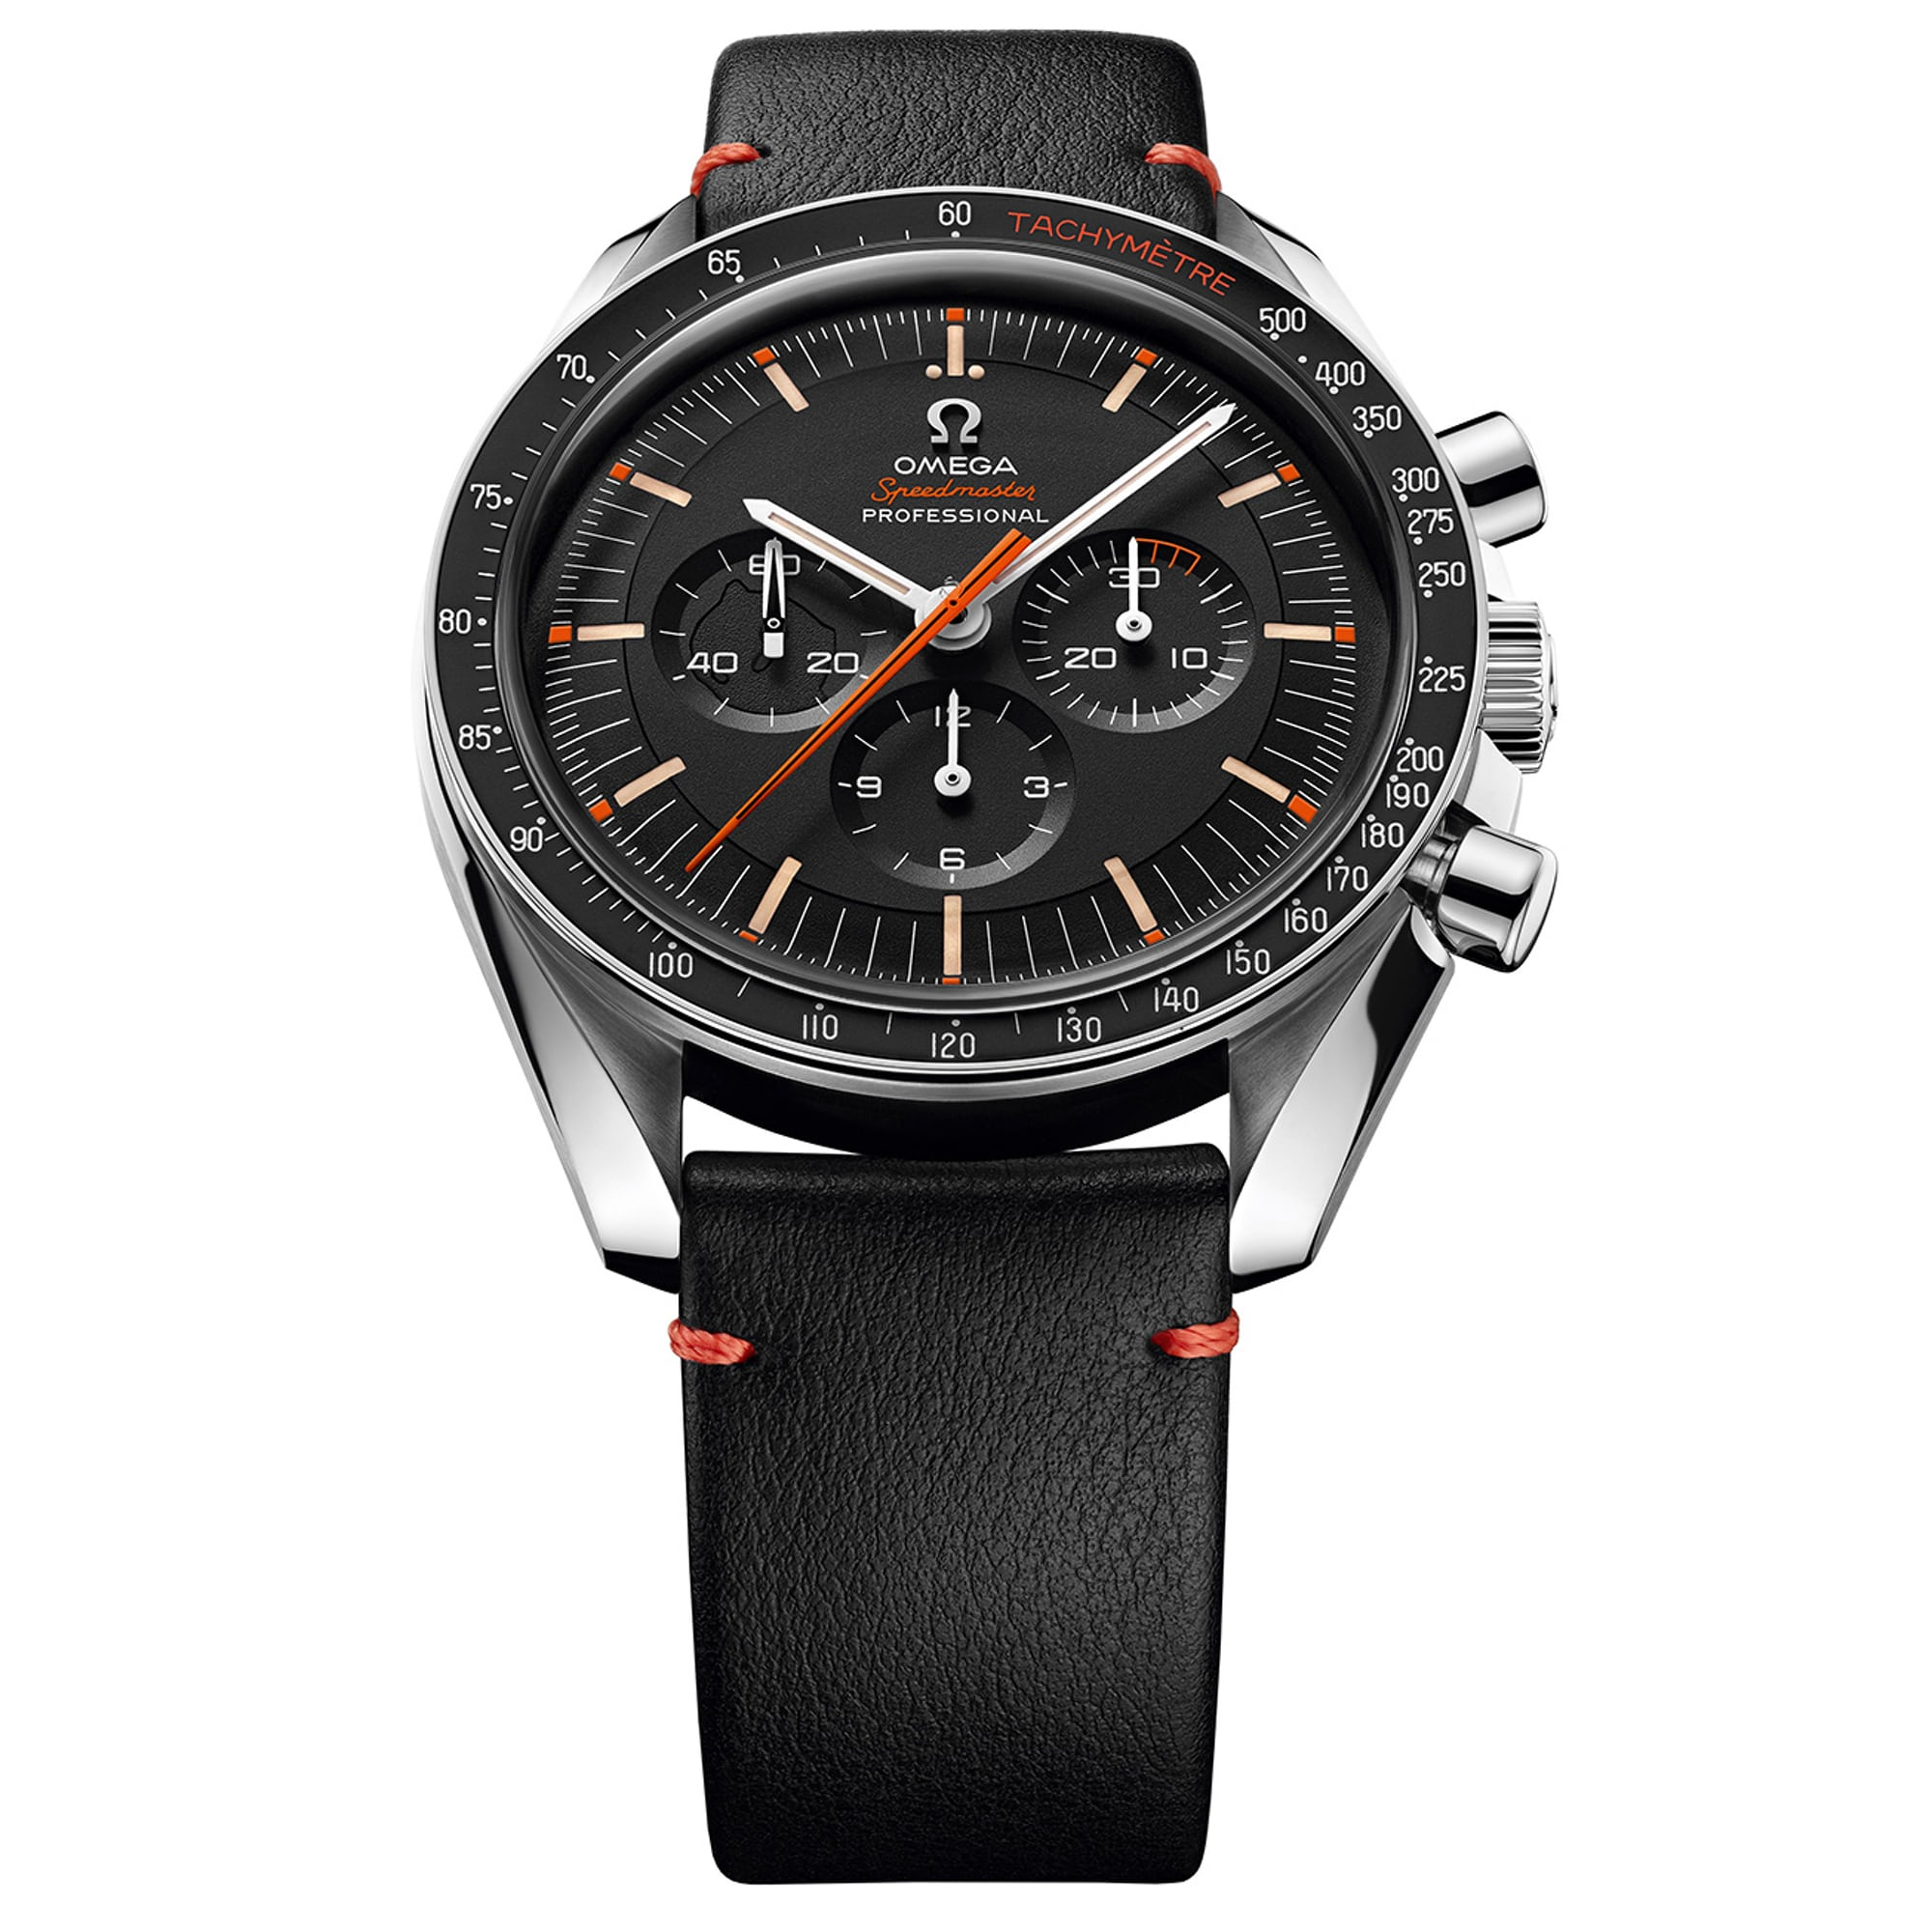 Introducing: The Omega Speedmaster 'Speedy Tuesday' 2 Ultraman y